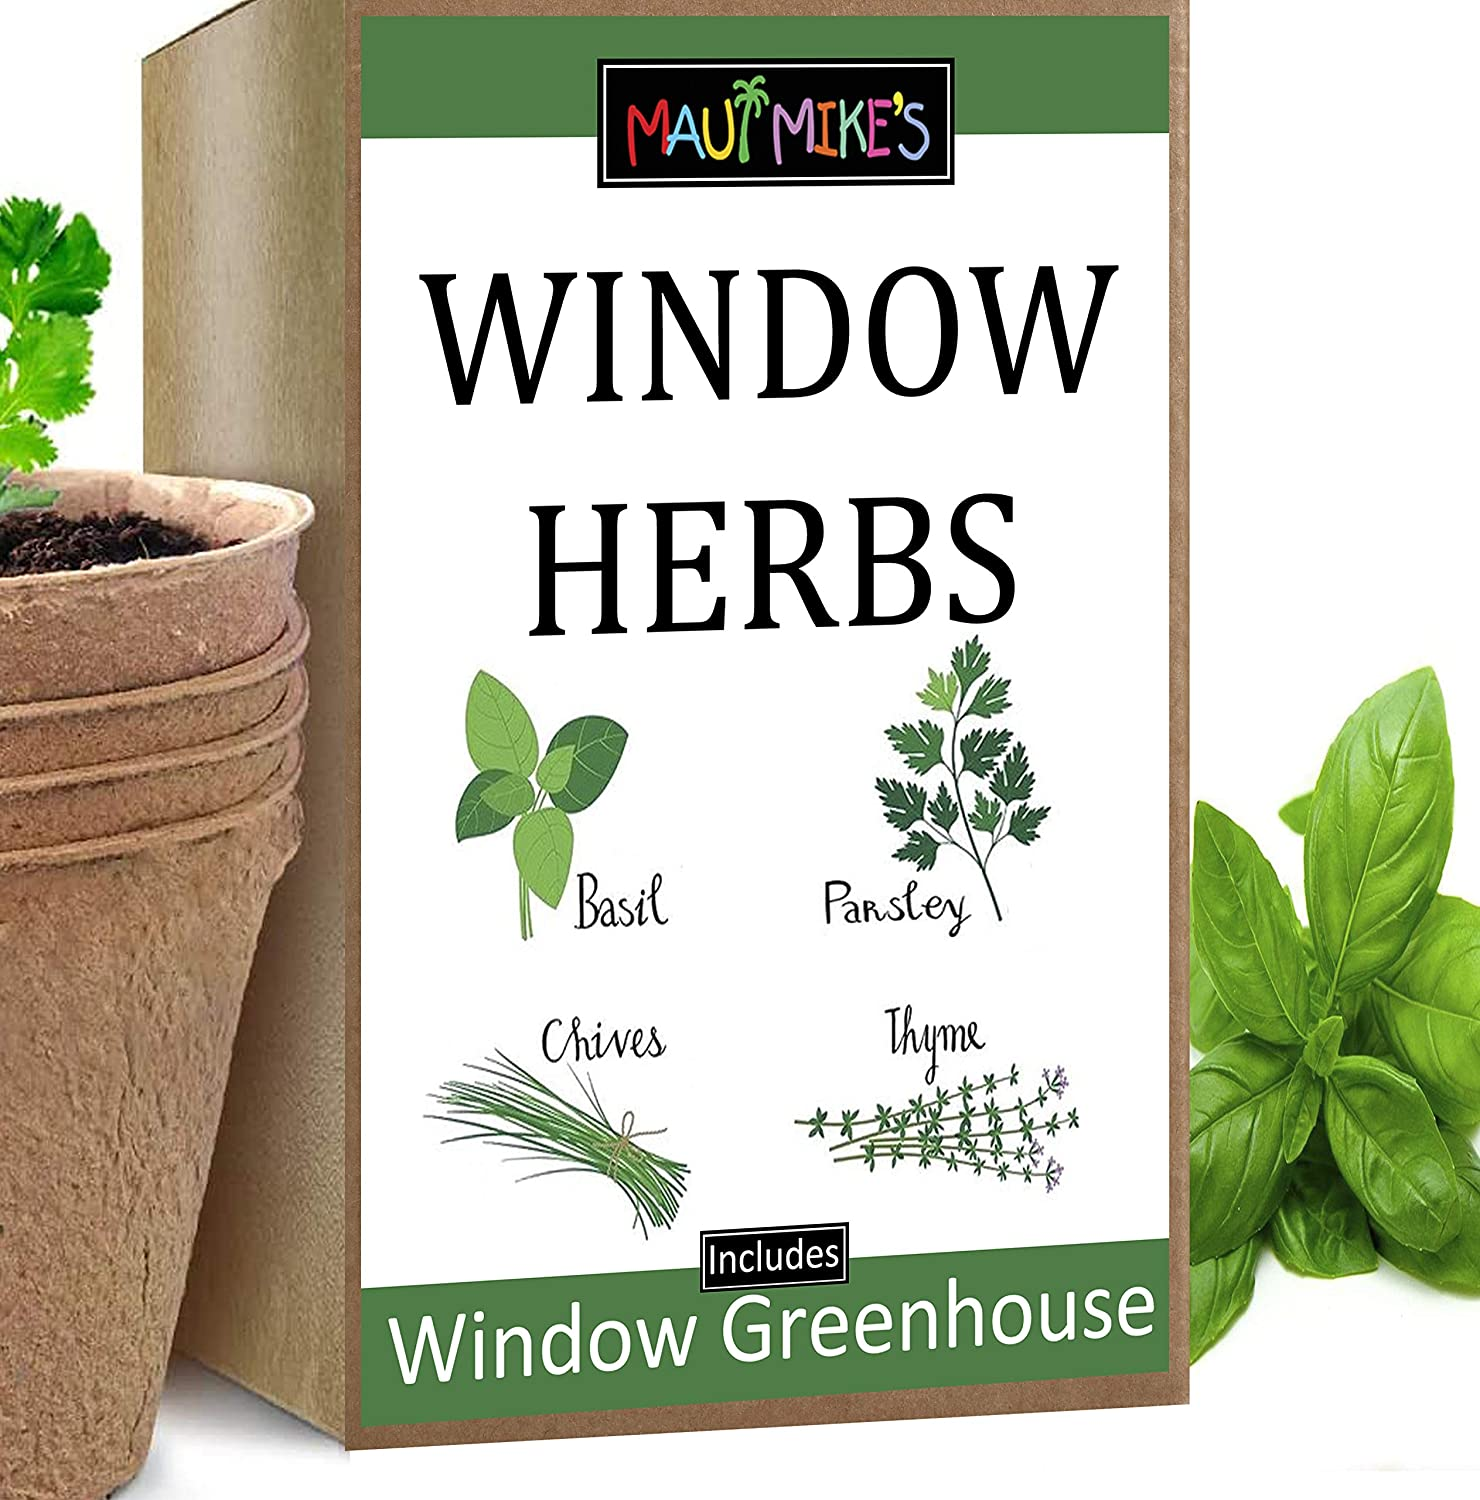 Maui Mike's Window Herb Indoor Growing Kit. Includes Soil Pellets, Seeds, Peat Pots, Greenhouses and Instructions. Grow Your own Basil, Chives, Parsley and Thyme Herbs.